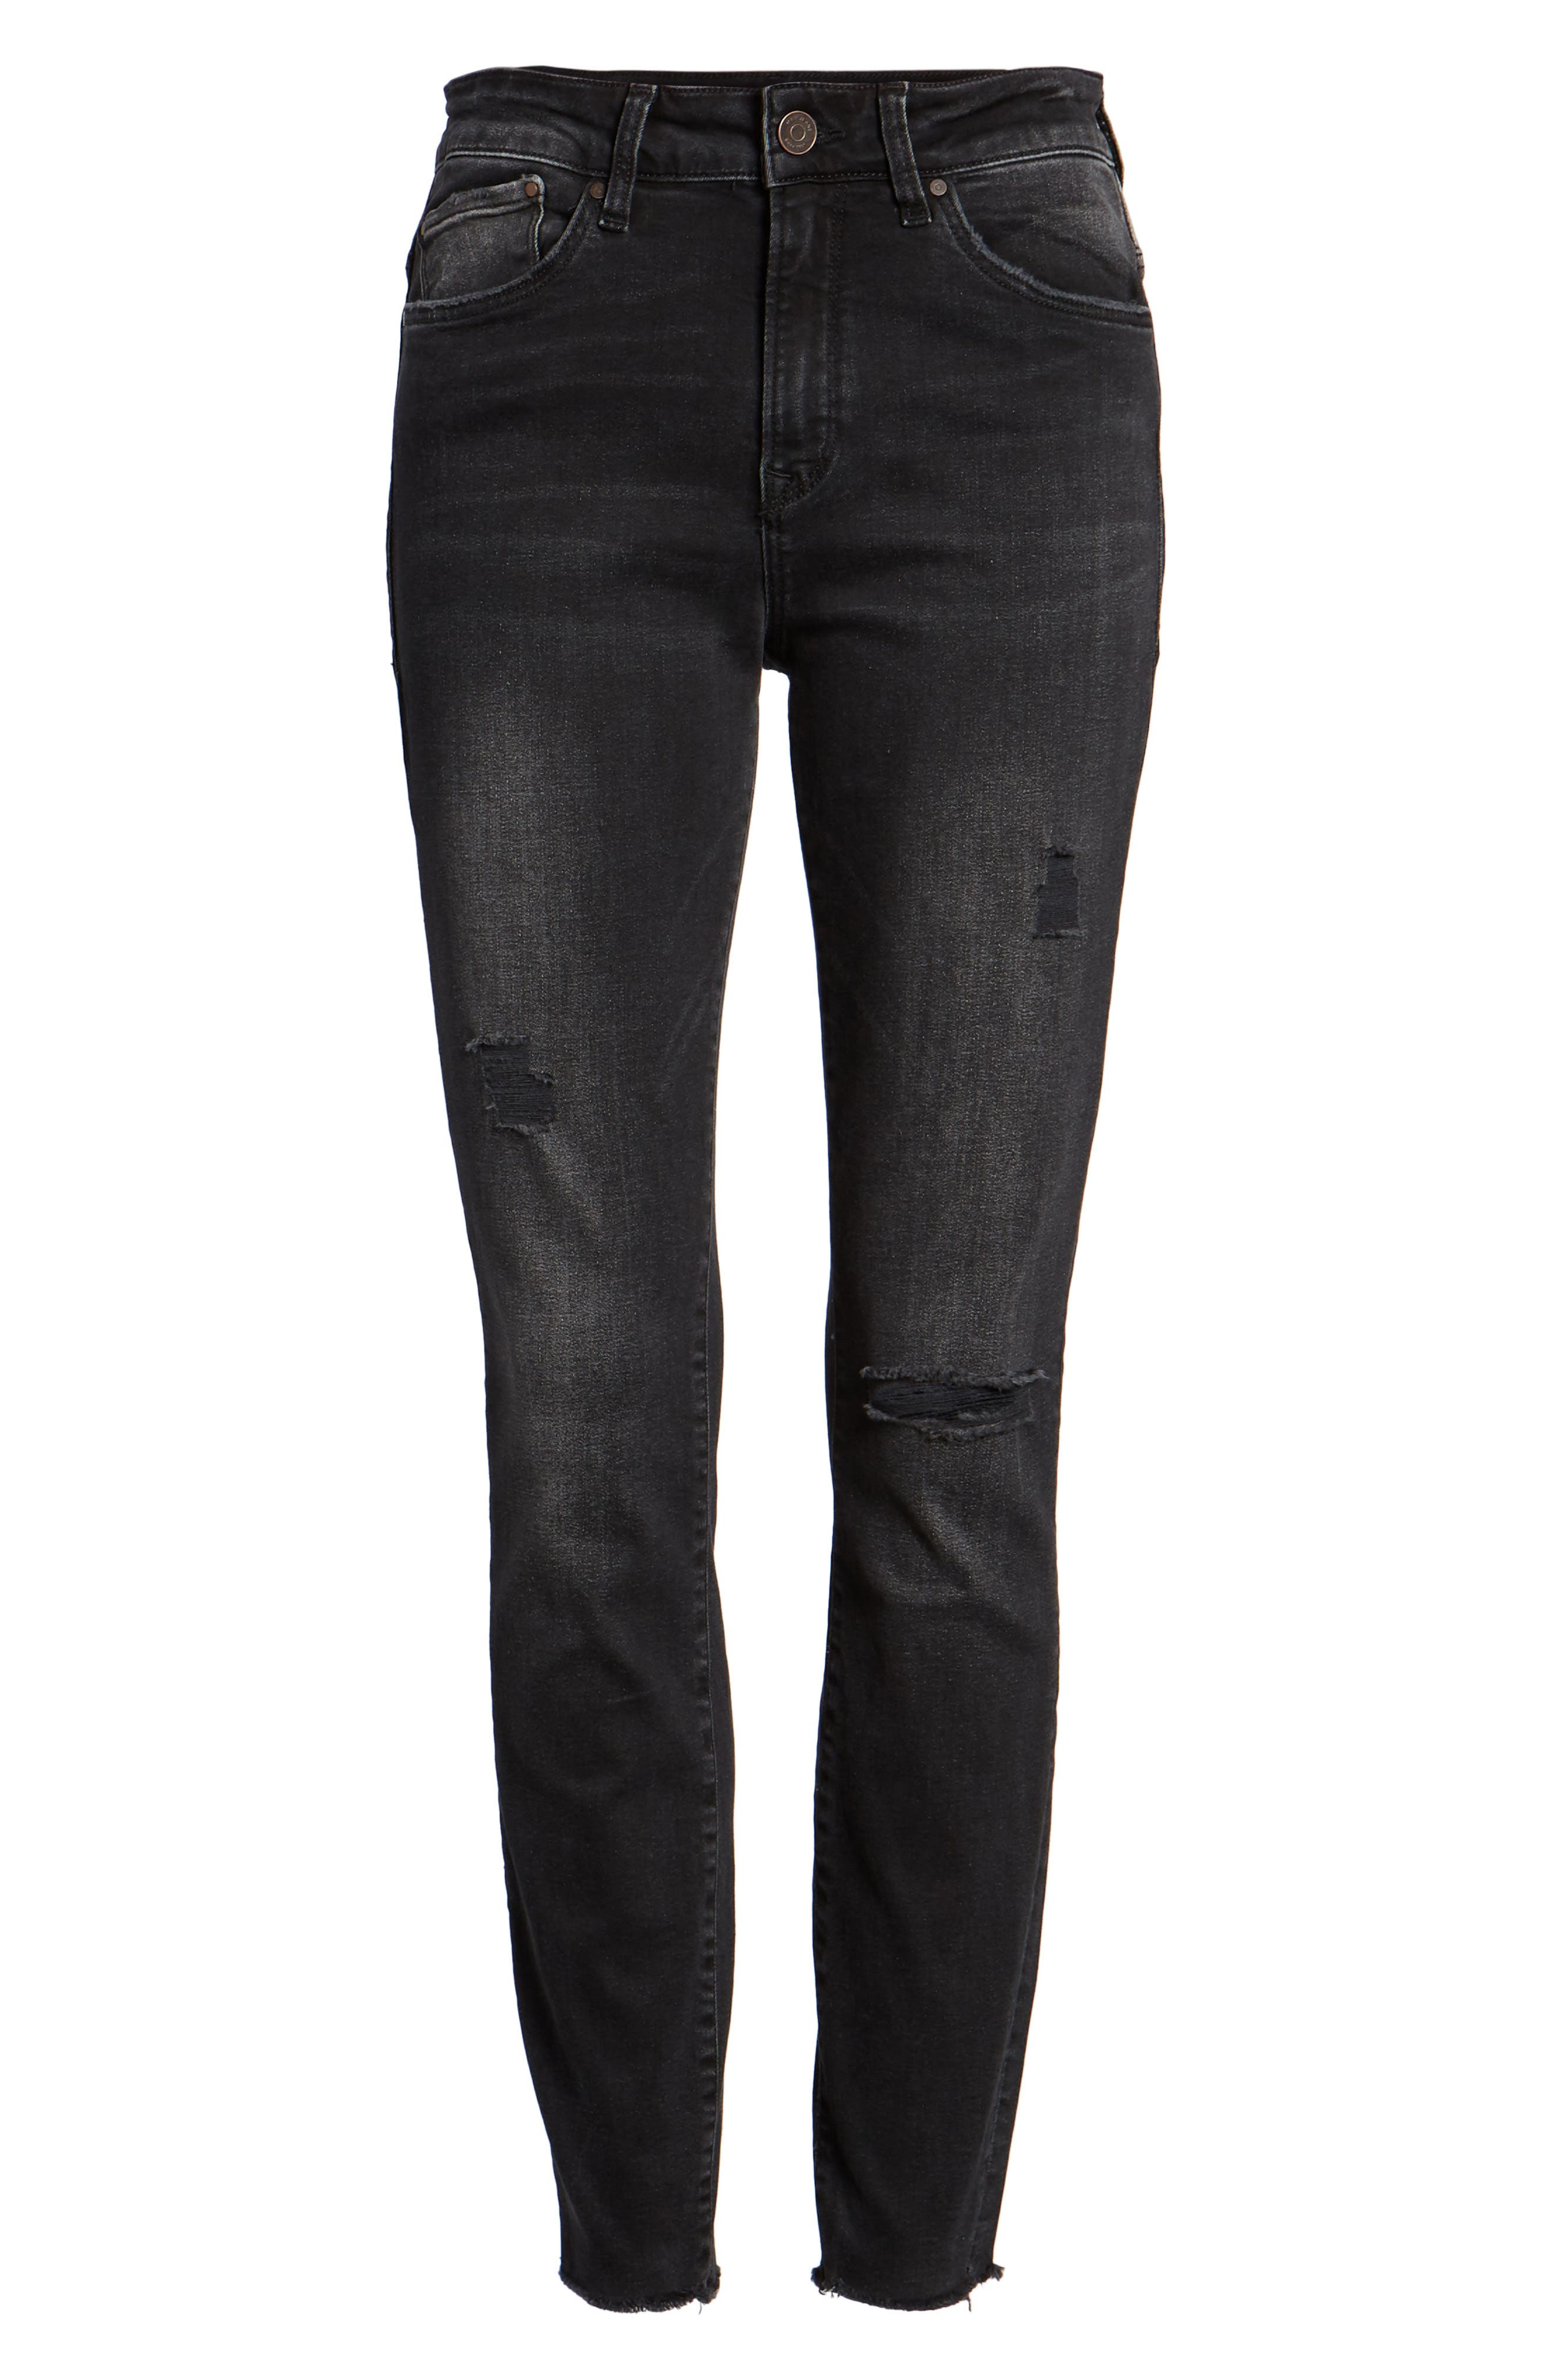 Alissa Super Skinny Ankle Jeans,                             Alternate thumbnail 7, color,                             SMOKE RIPPED NOLITA